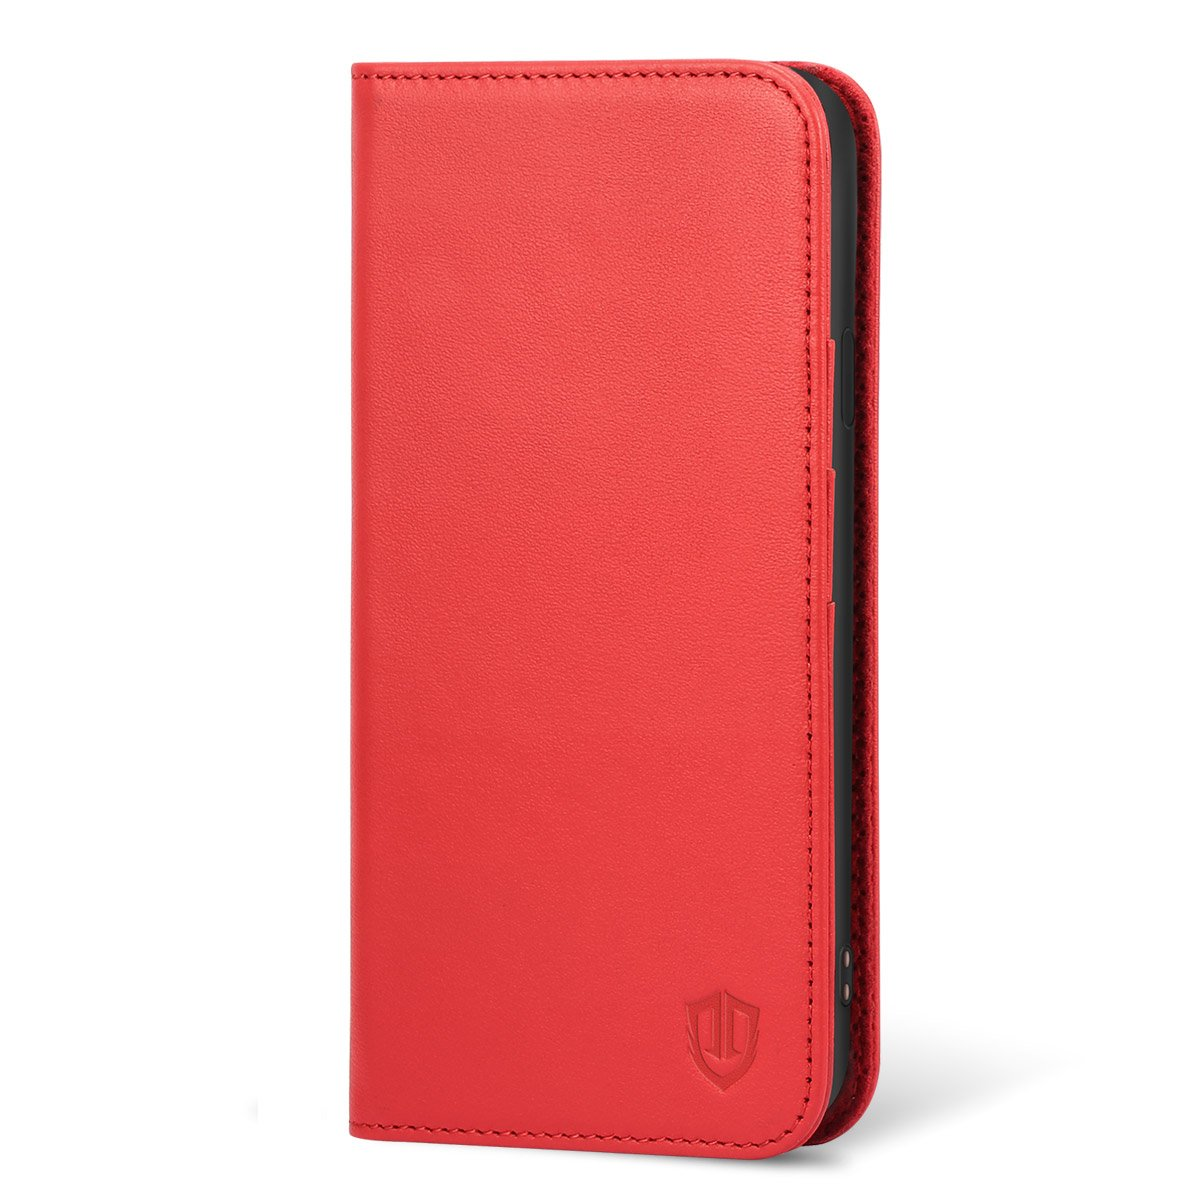 SHIELDON iPhone 6s Case, iPhone 6 Wallet Case, Genuine Leather Durable Wallet Flip Book Cover Design with Kickstand [ID Card Slot] [Magnetic Closure] for iPhone 6/6s - Red